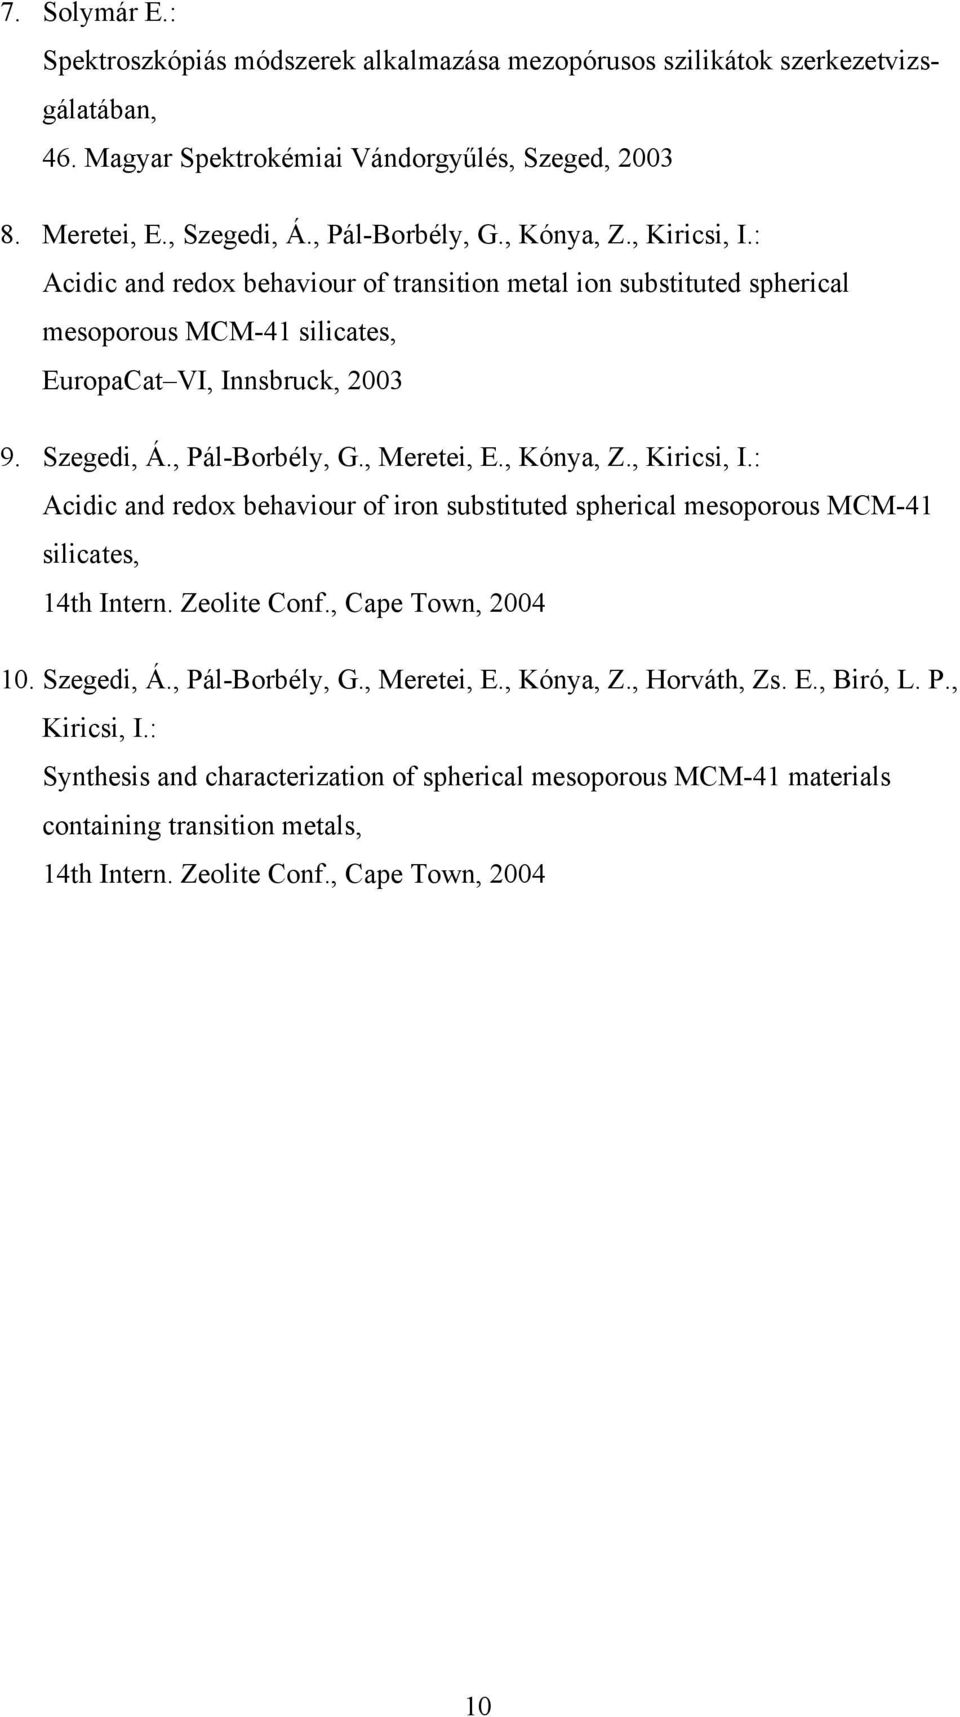 , Meretei, E., Kónya, Z., Kiricsi, I.: Acidic and redox behaviour of iron substituted spherical mesoporous MCM-41 silicates, 14th Intern. Zeolite Conf., Cape Town, 2004 10. Szegedi, Á.